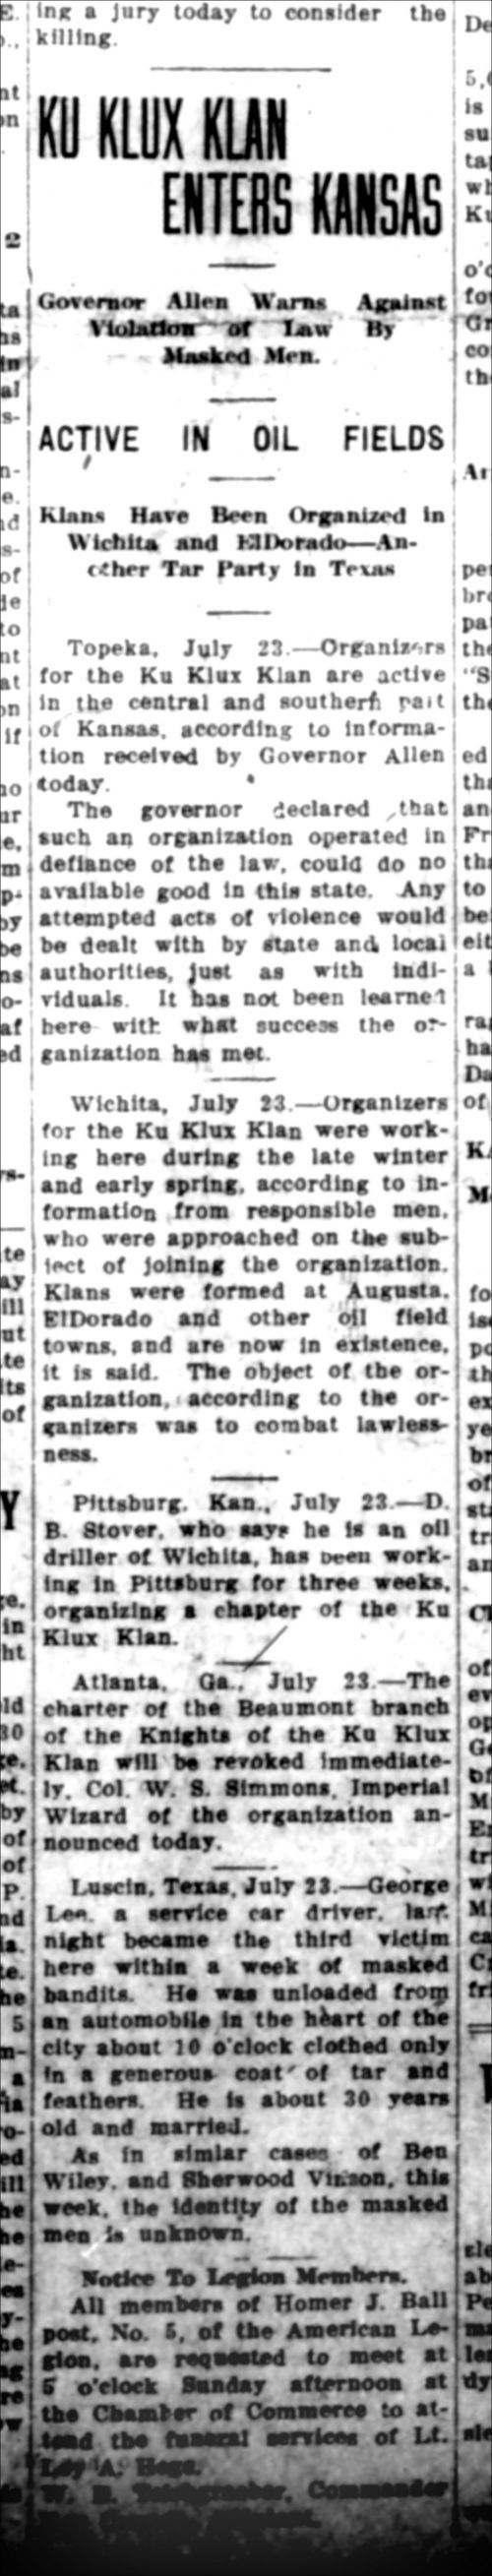 Ku Klux Klan enters Kansas - Page